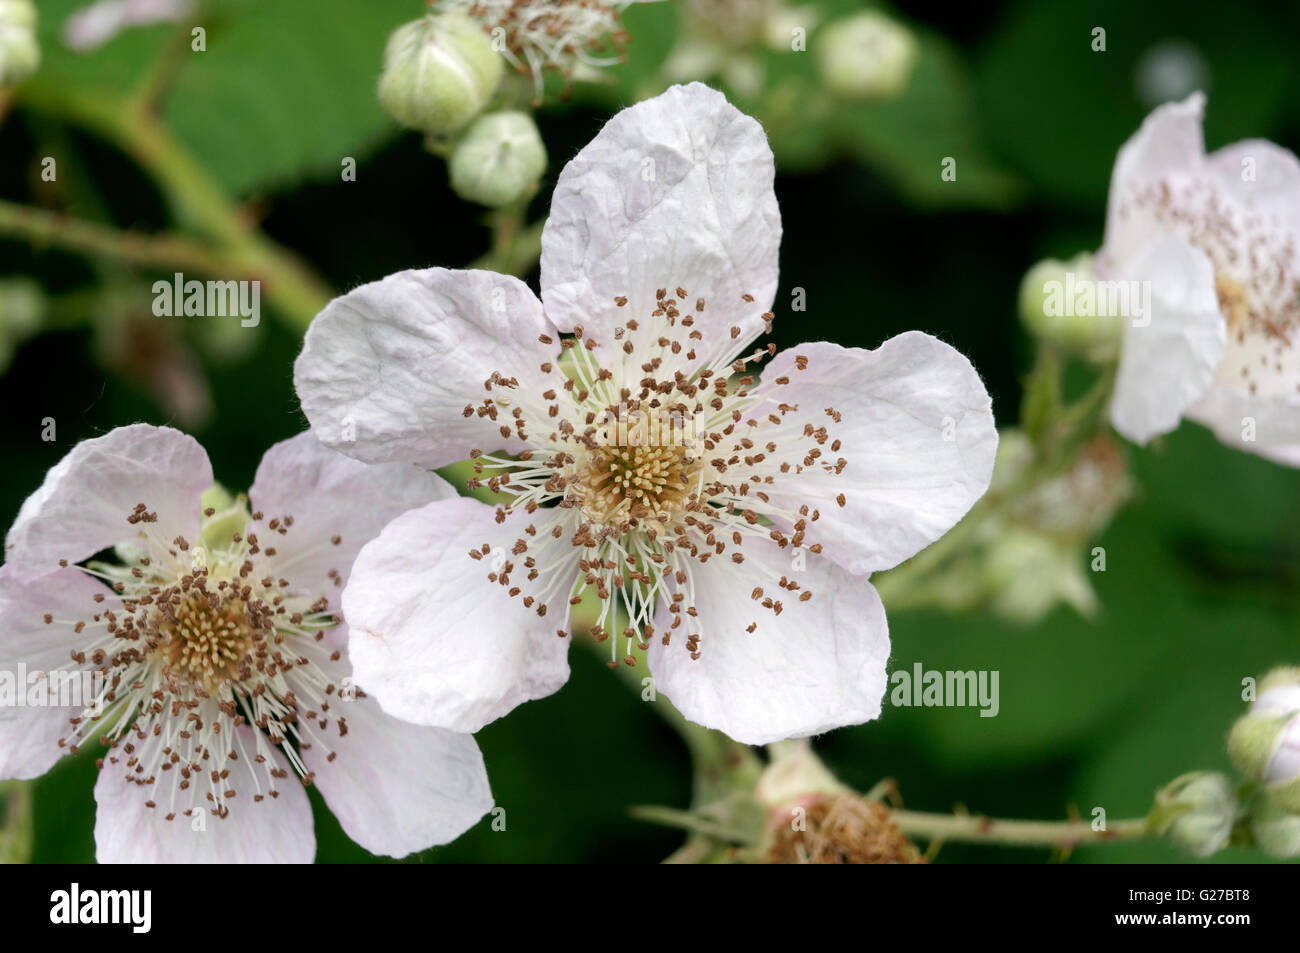 Cluster of Himalayan Blackberry (Rubus discolor or Rubus ameniacus) wildflowers, Vancouver, British Columbia, Canada - Stock Image